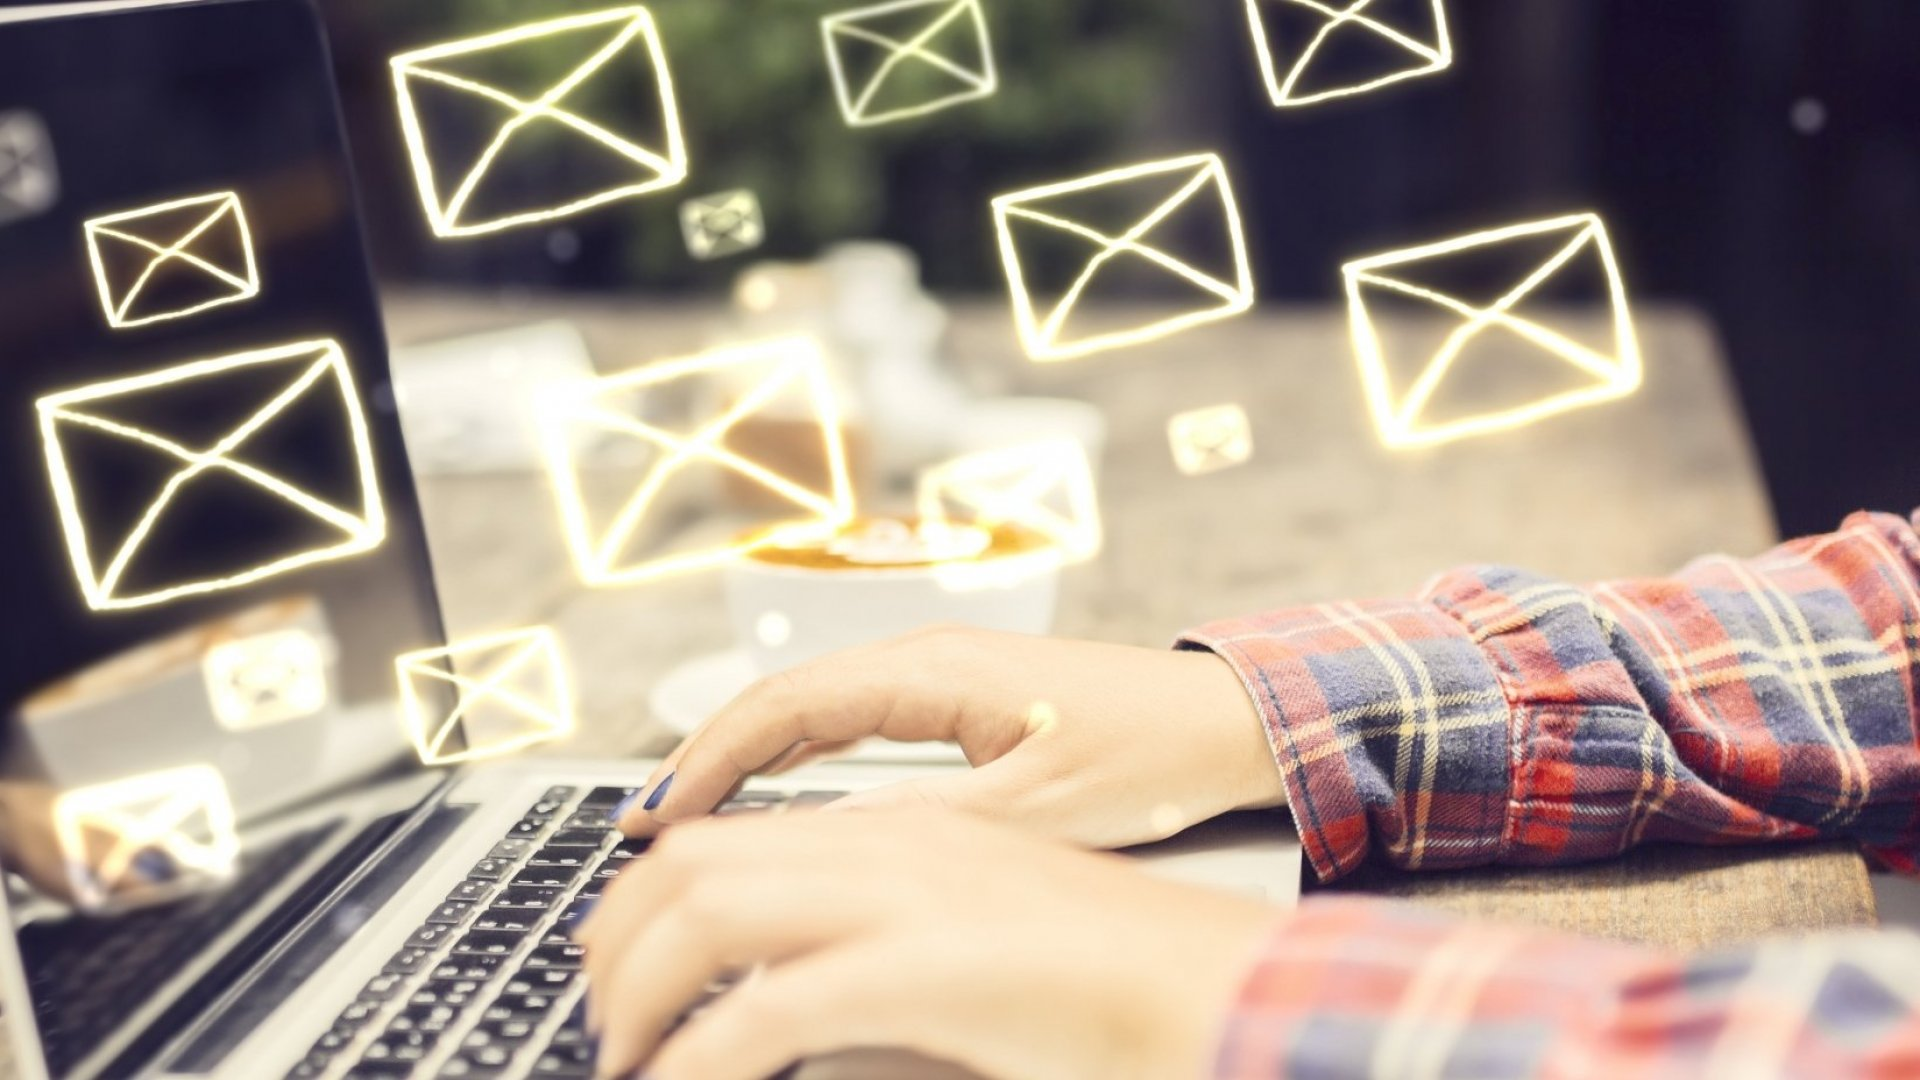 Wrapping a compelling message in a weak subject line will ruin the entire package—and your sales relationships.